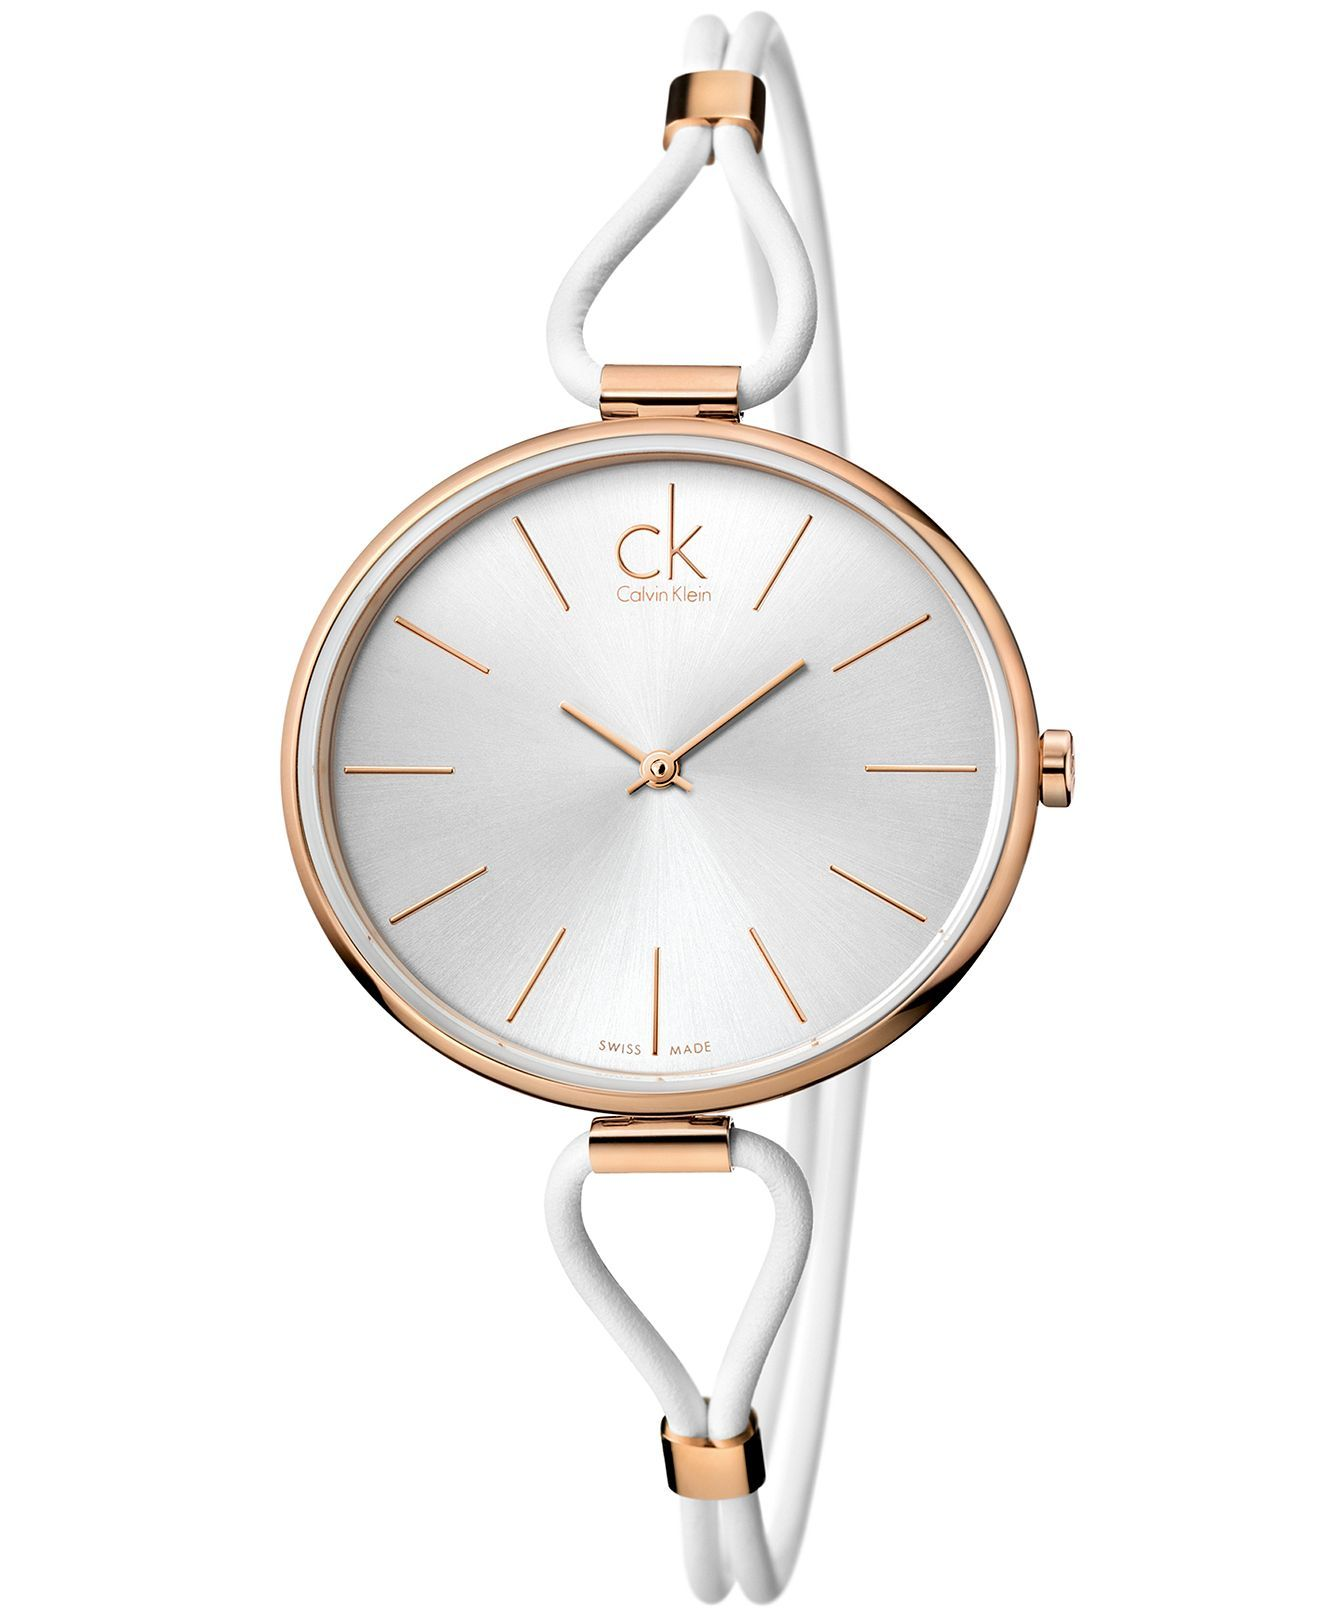 8a4ce98476 ck Calvin Klein Watch, Women's Swiss Selection White Leather Cord ...